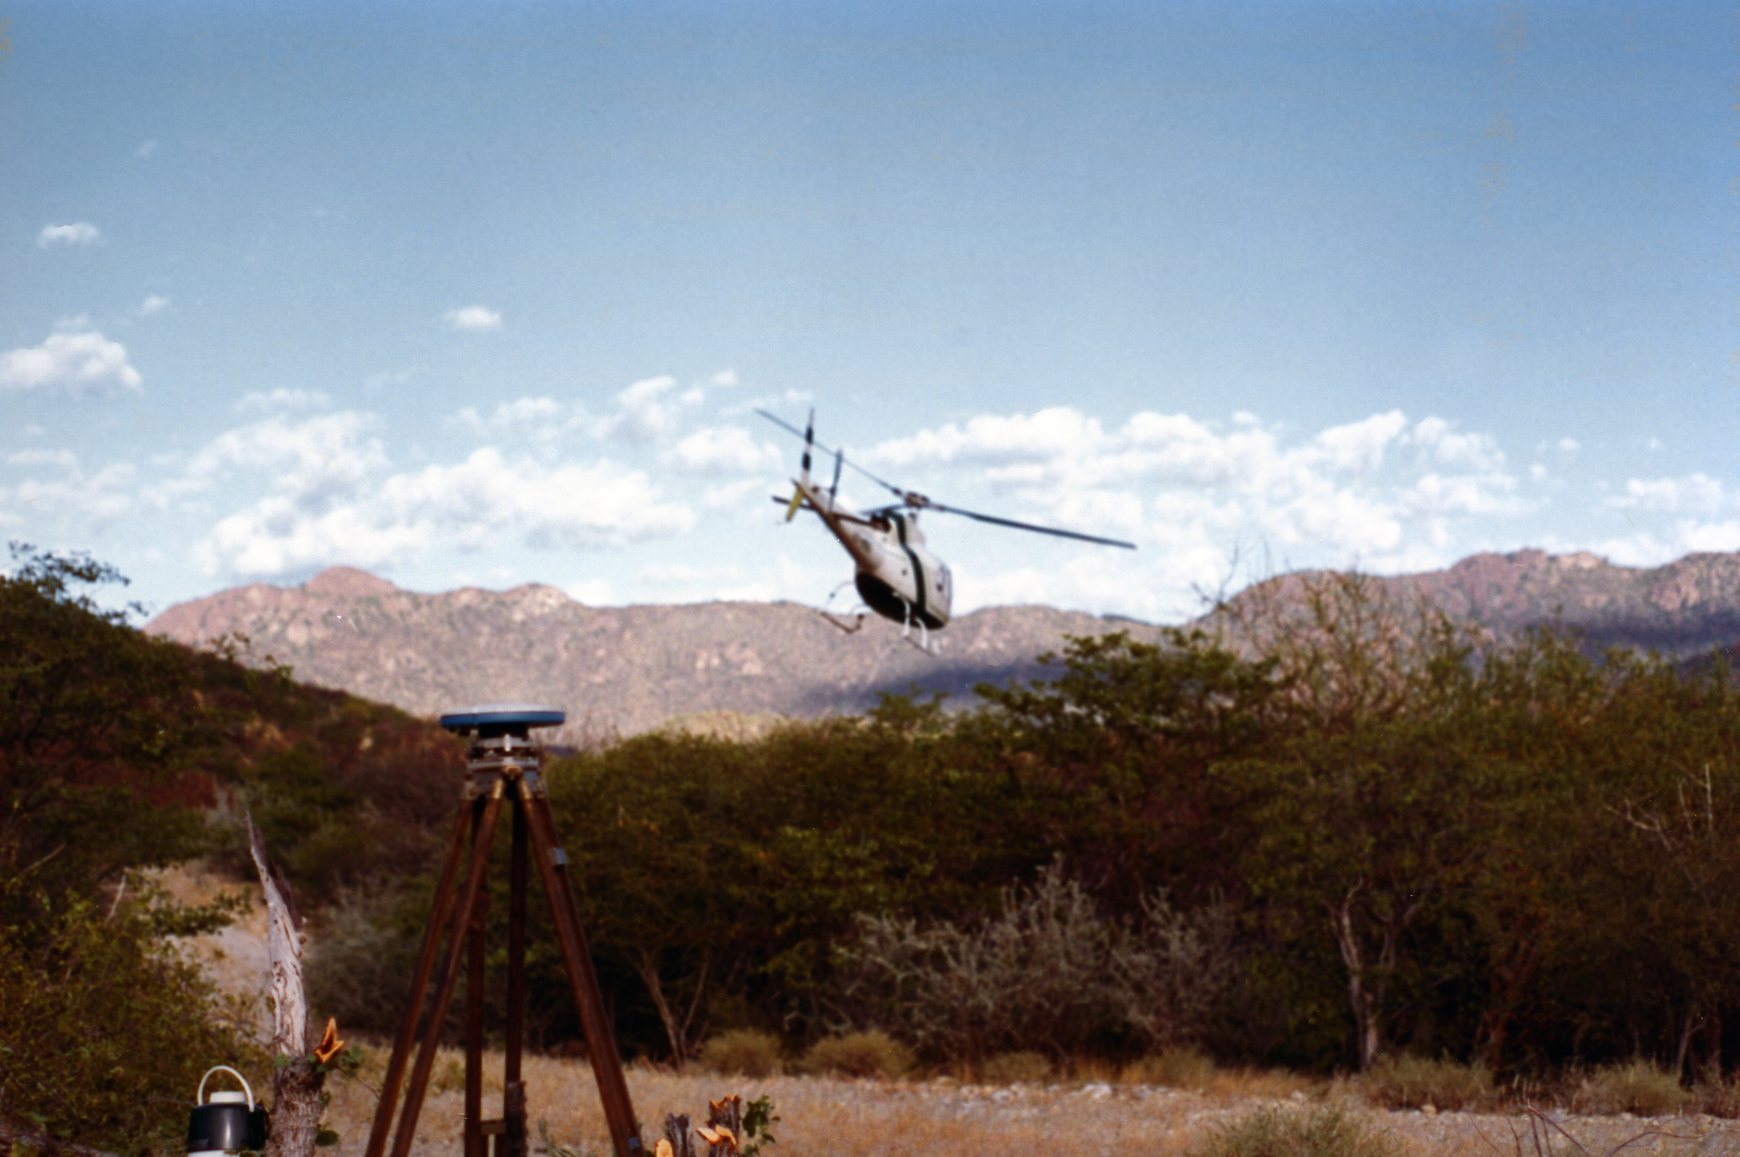 accessing remote areas of Namibia on a survey job using helicopters